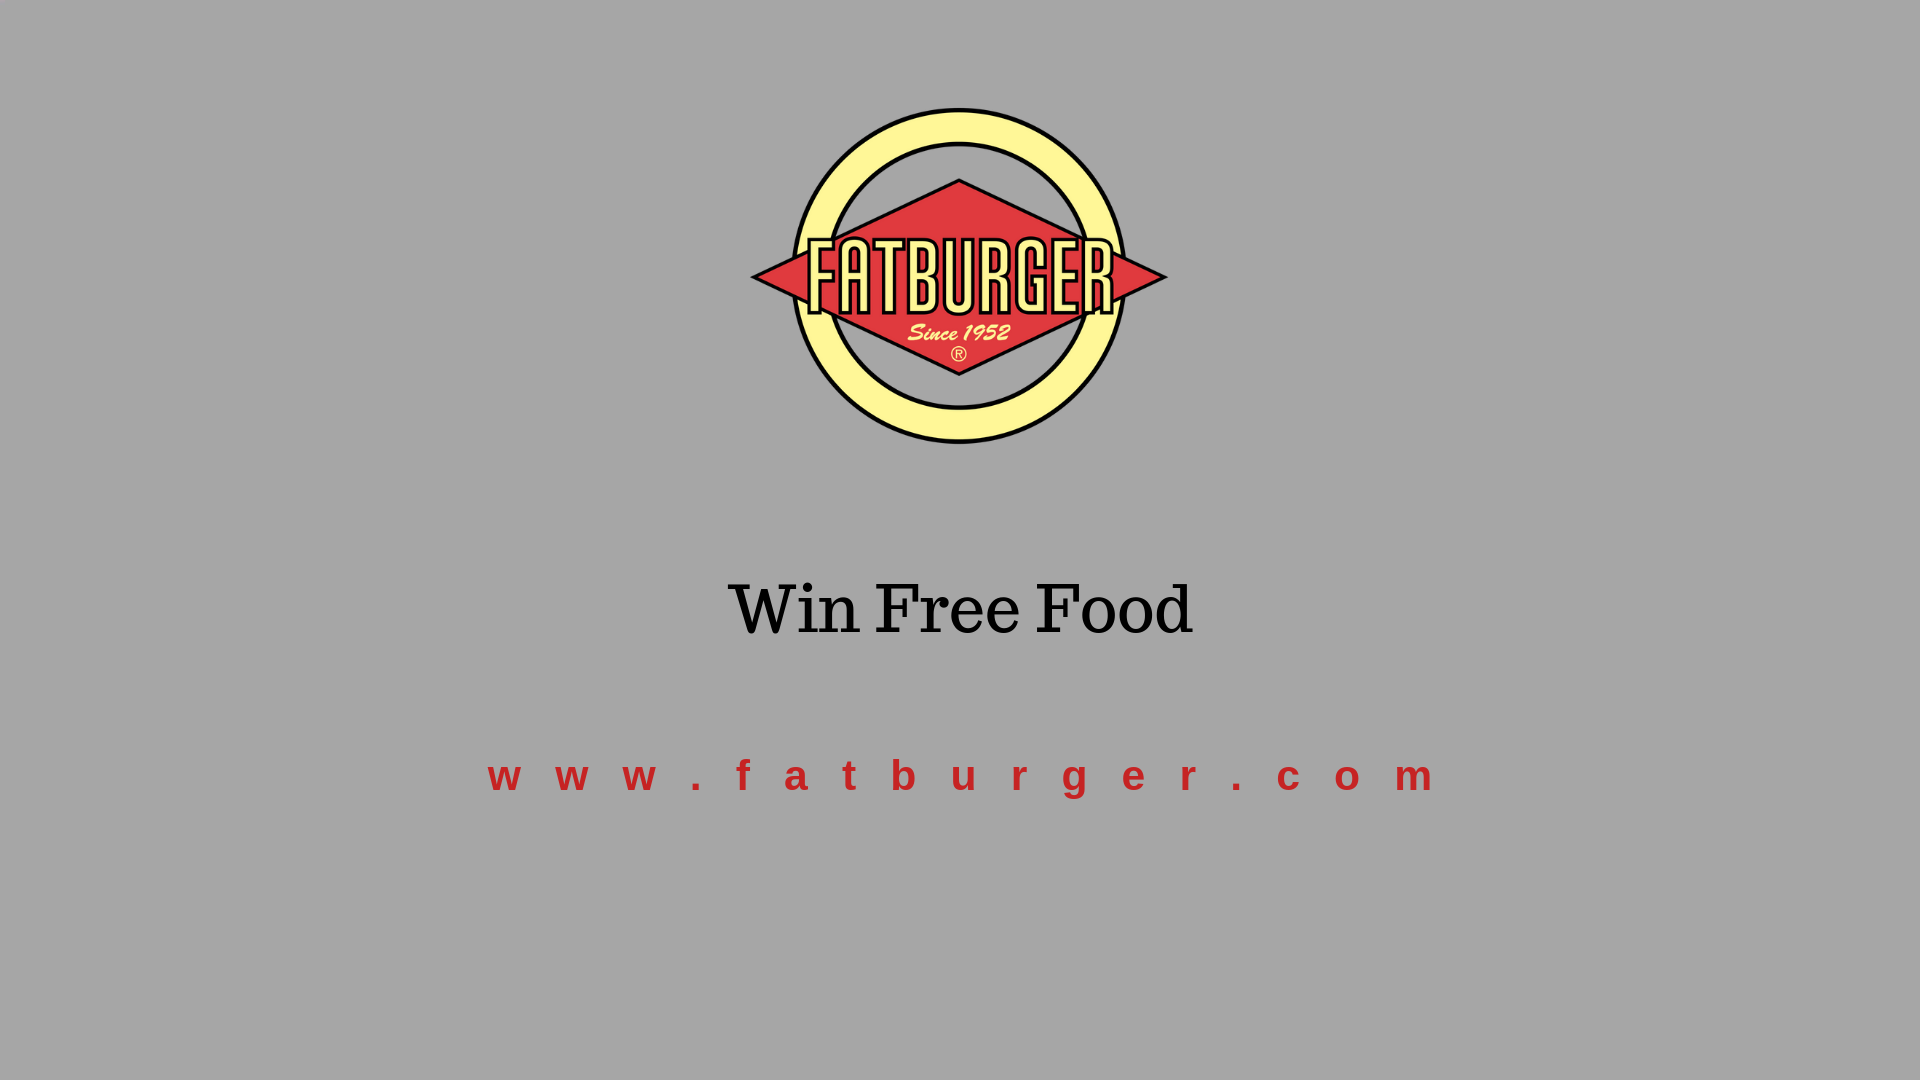 Fatburger.com Feedback Survey- Win Validation Code🎊